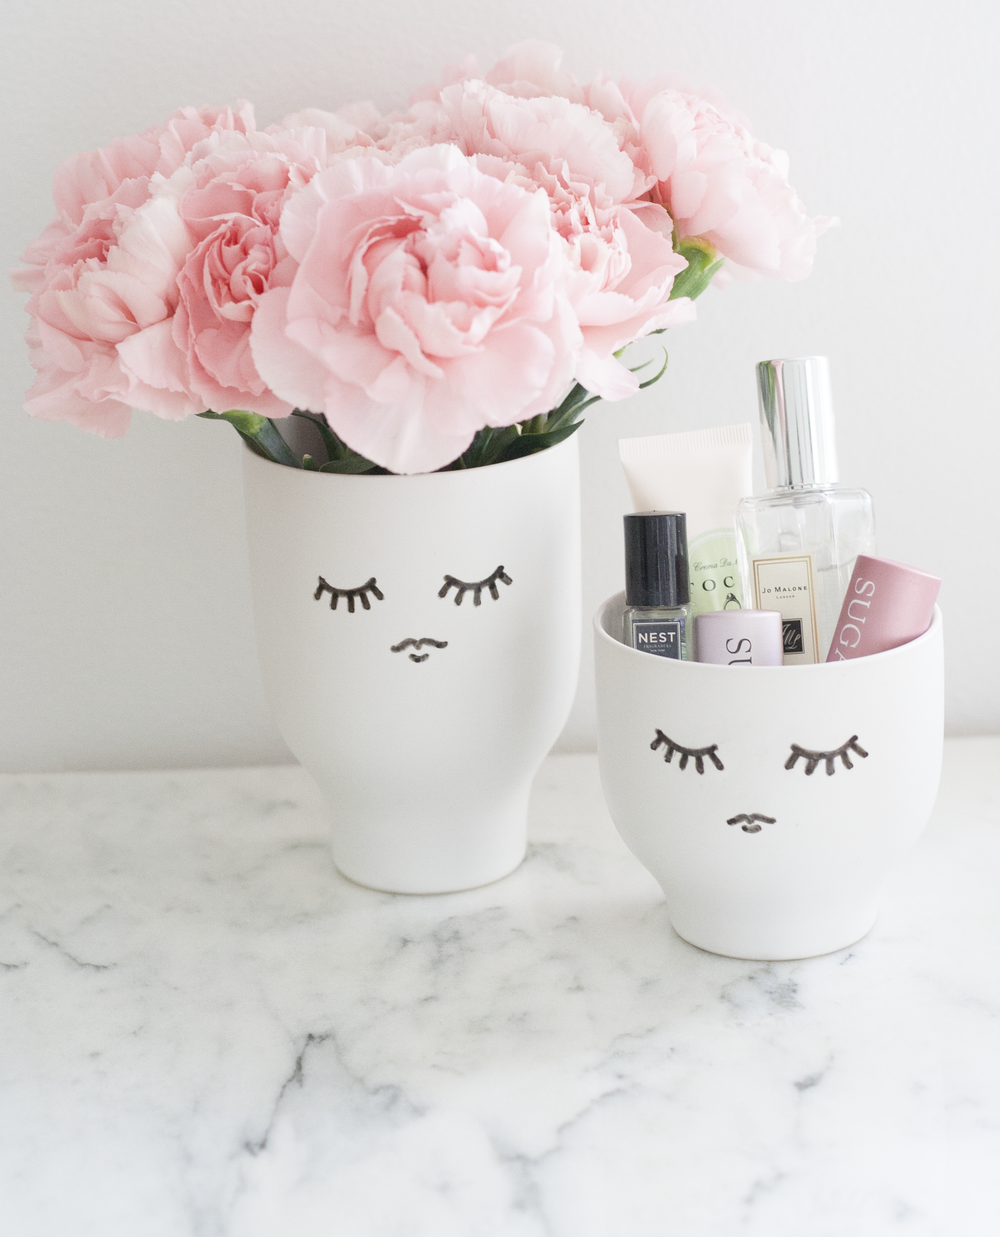 DIY Celfie Vase | Sarah Makes Stuff